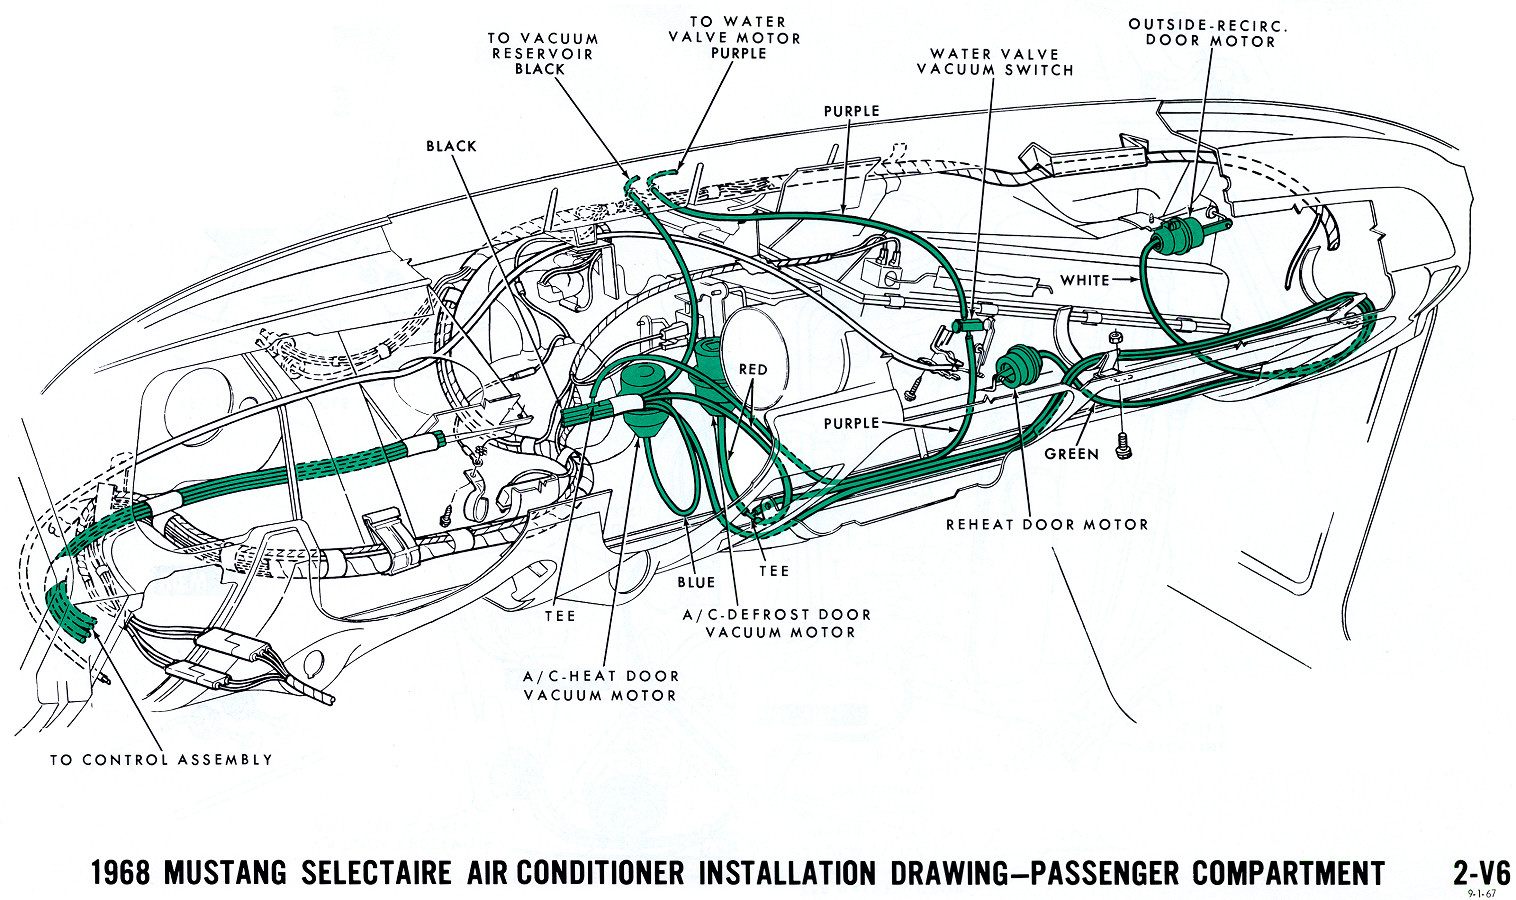 1968 Mustang Wiring Diagrams And Vacuum Schematics Average Joe Ford E-450  Wiring-Diagram 1968 Ford Convertible Wiring Diagram